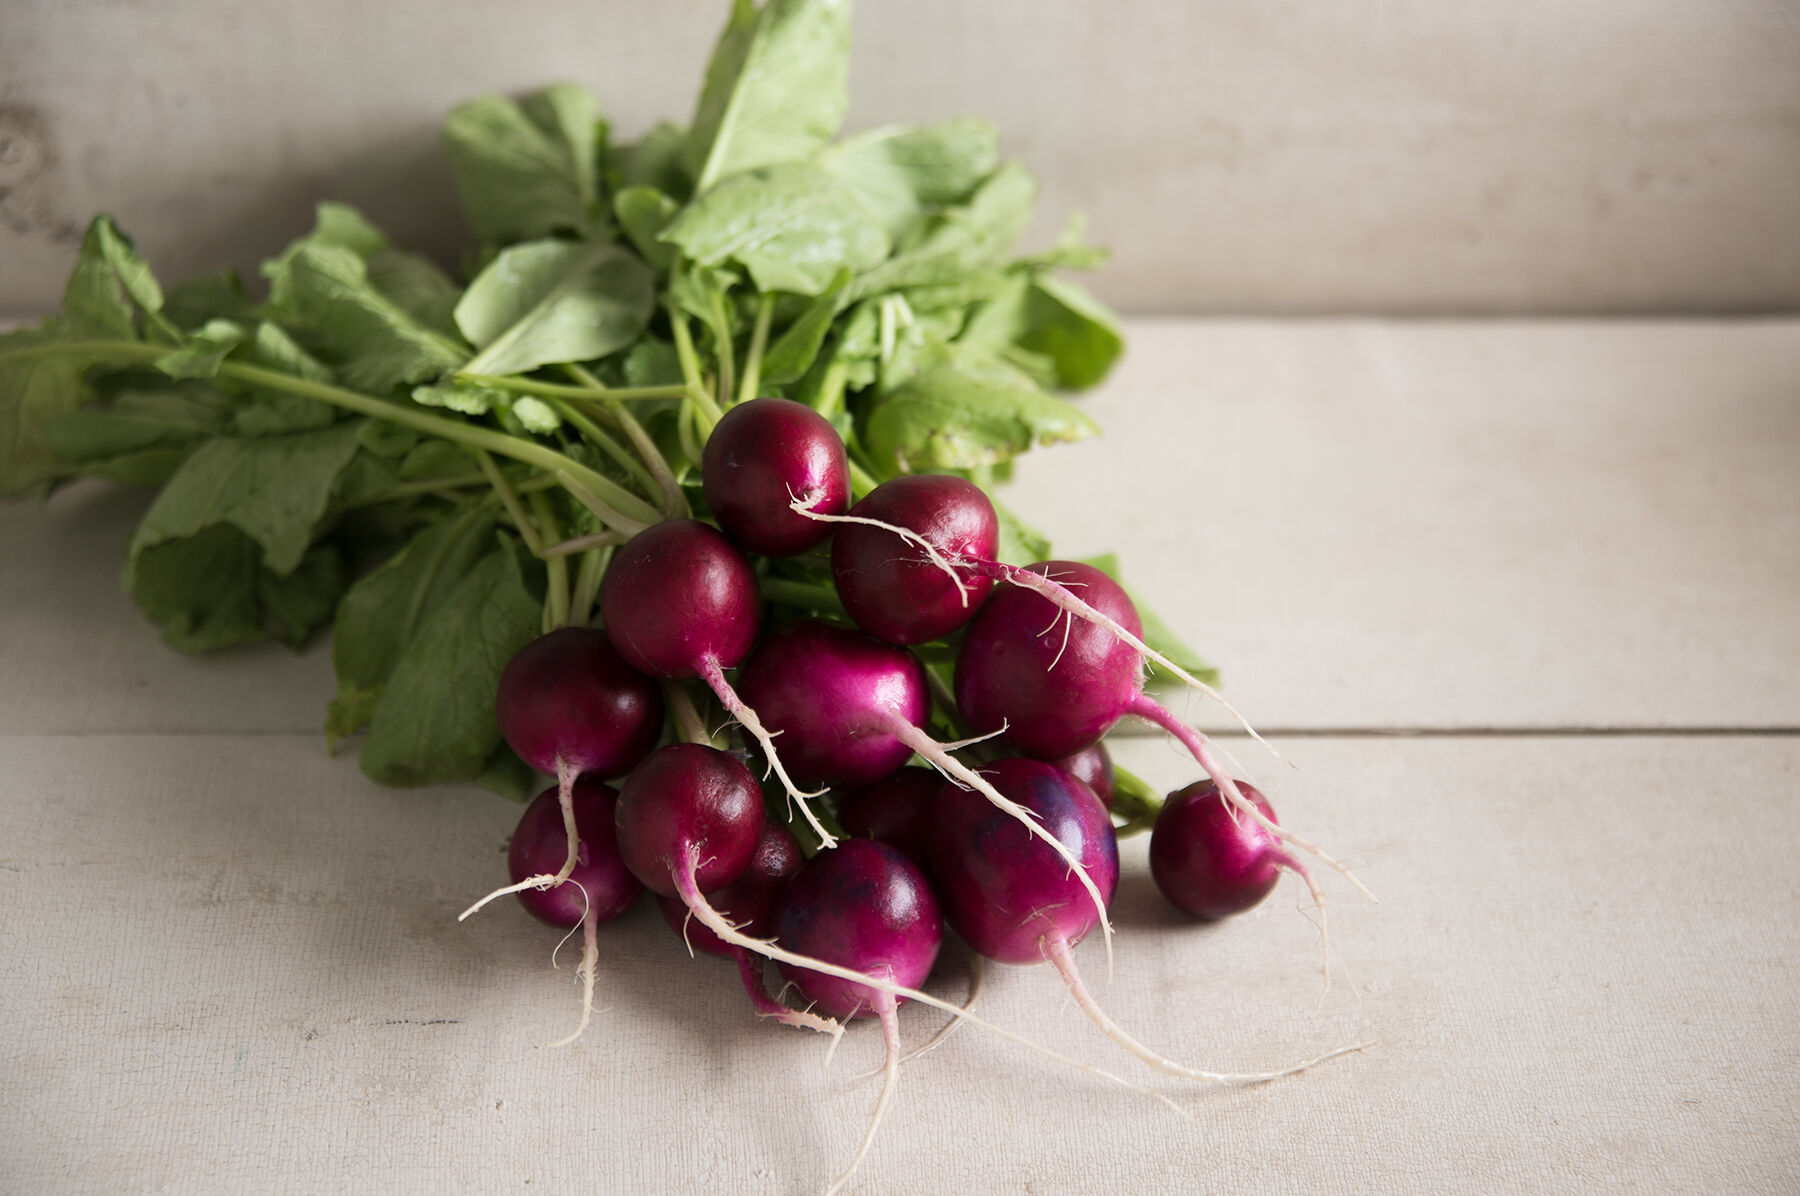 Picture Packet Kings Seeds Radish Vegetable Bacchus F1